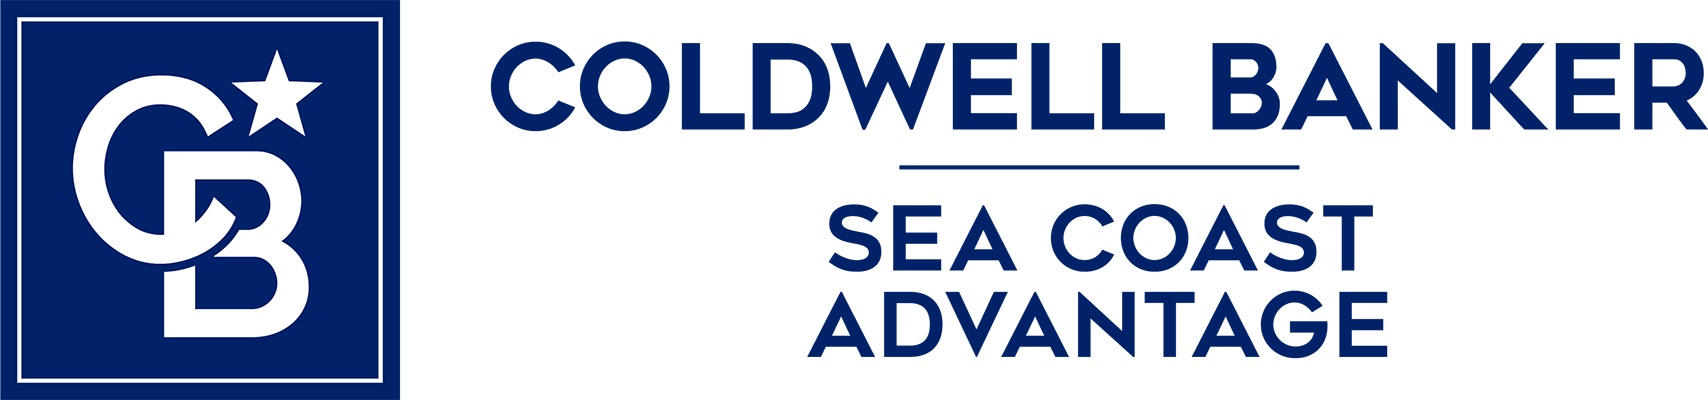 Willetts Team - Coldwell Banker Sea Coast Advantage